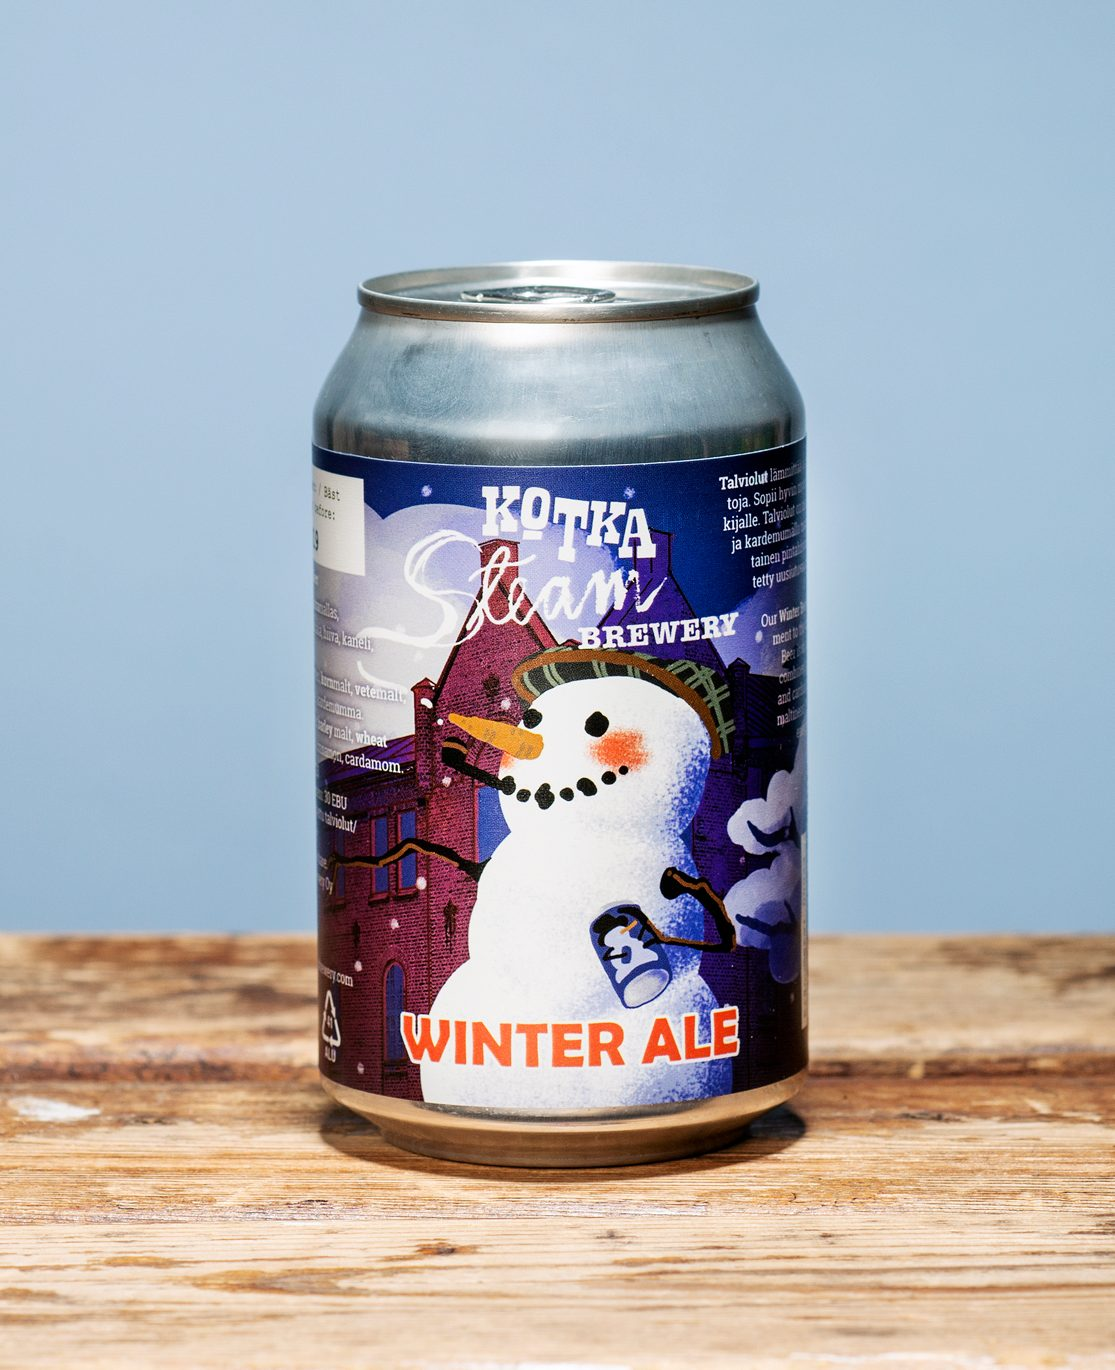 Kotka Steam Brewery - Winter Ale